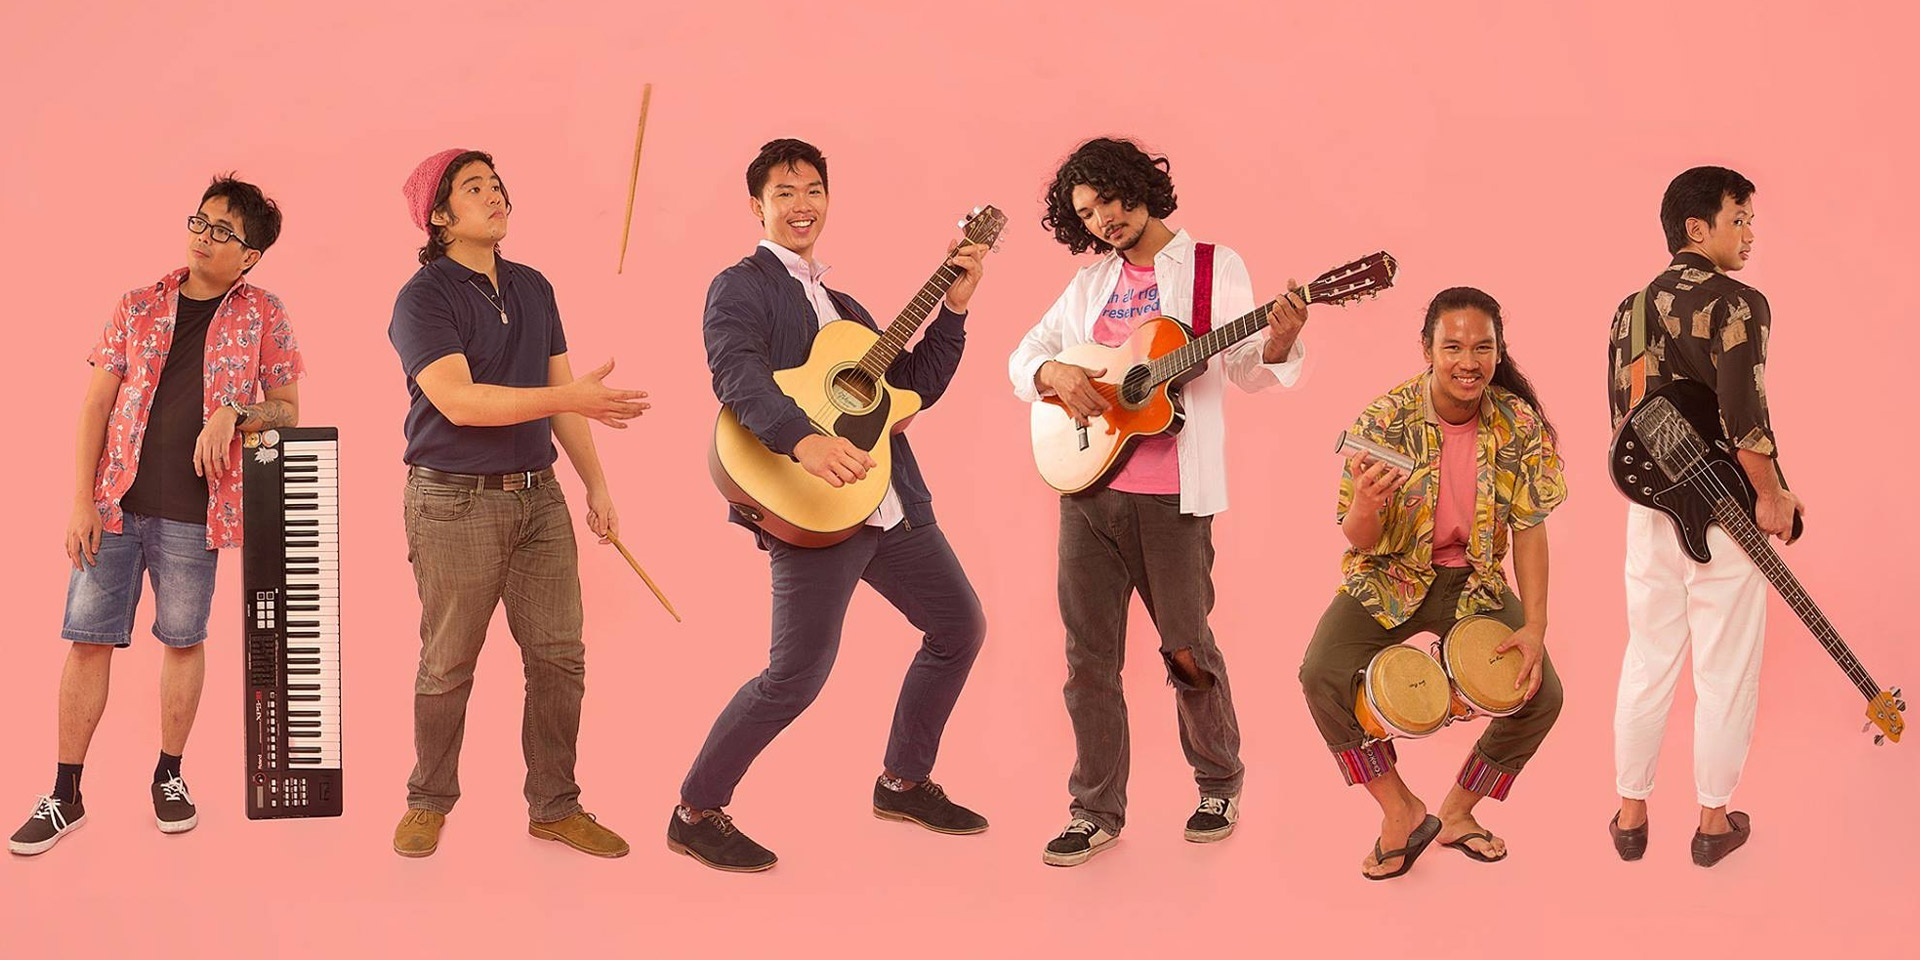 Pinkmen unveil double single release 'Your Name' and 'Hanggang Sa Muli' – listen